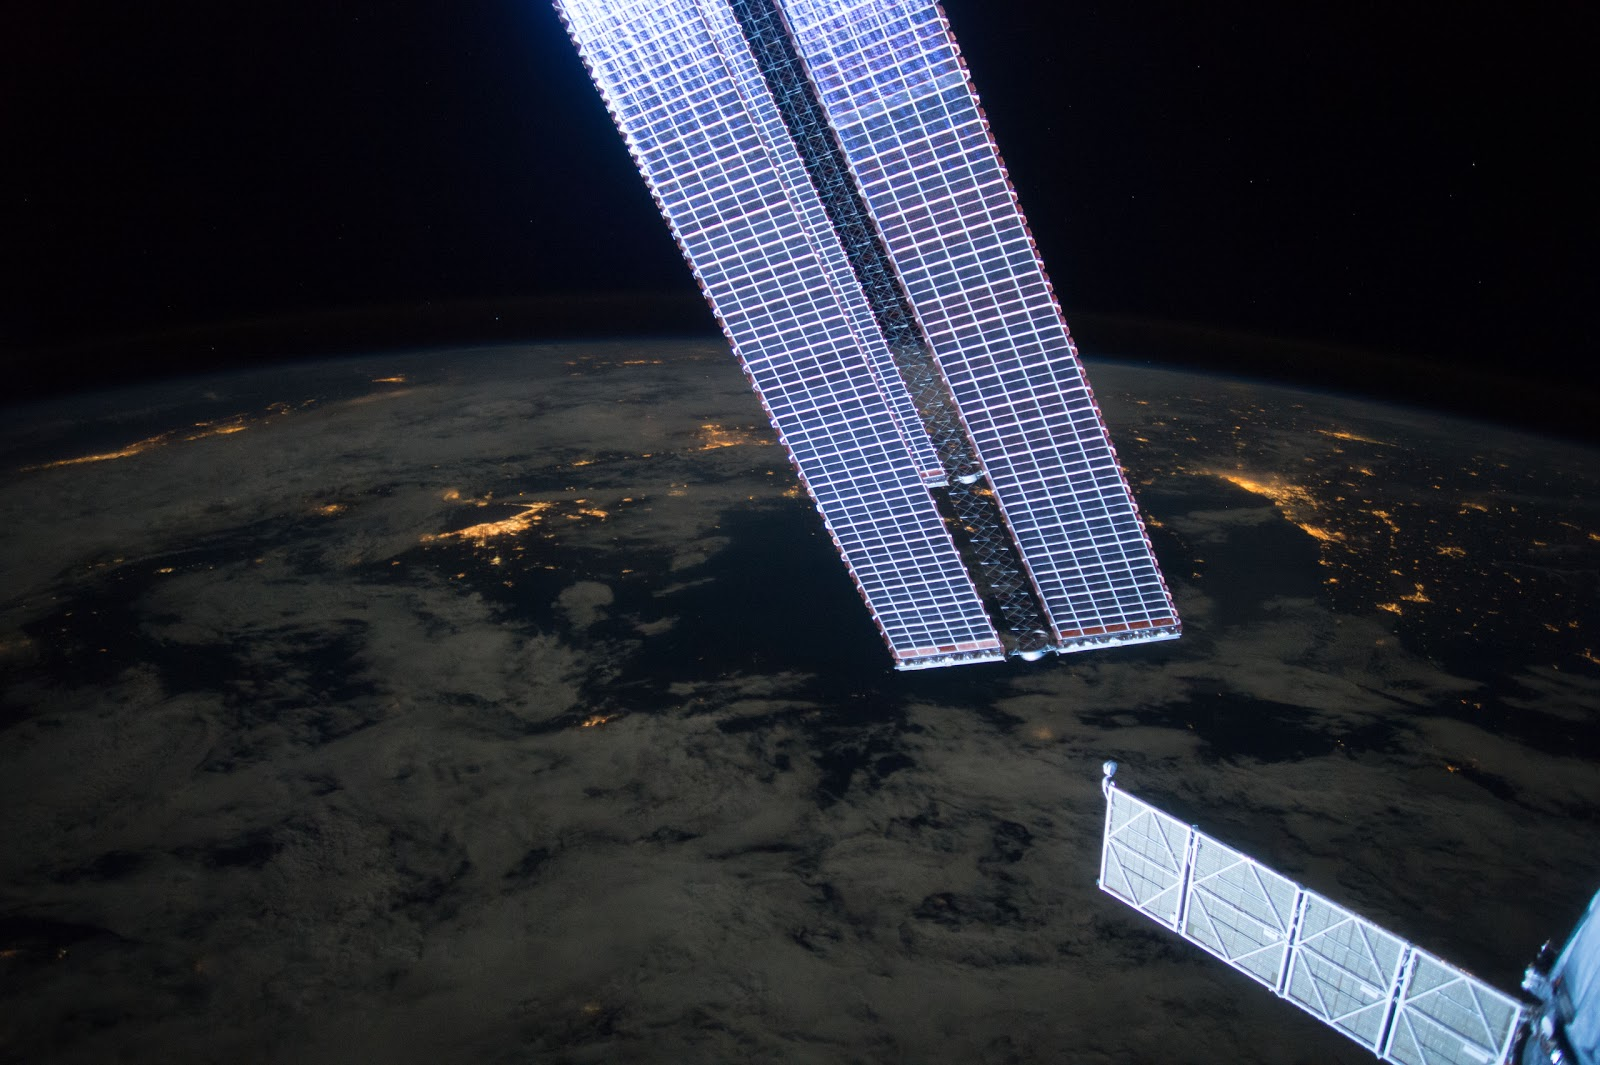 solar powered space station - photo #21